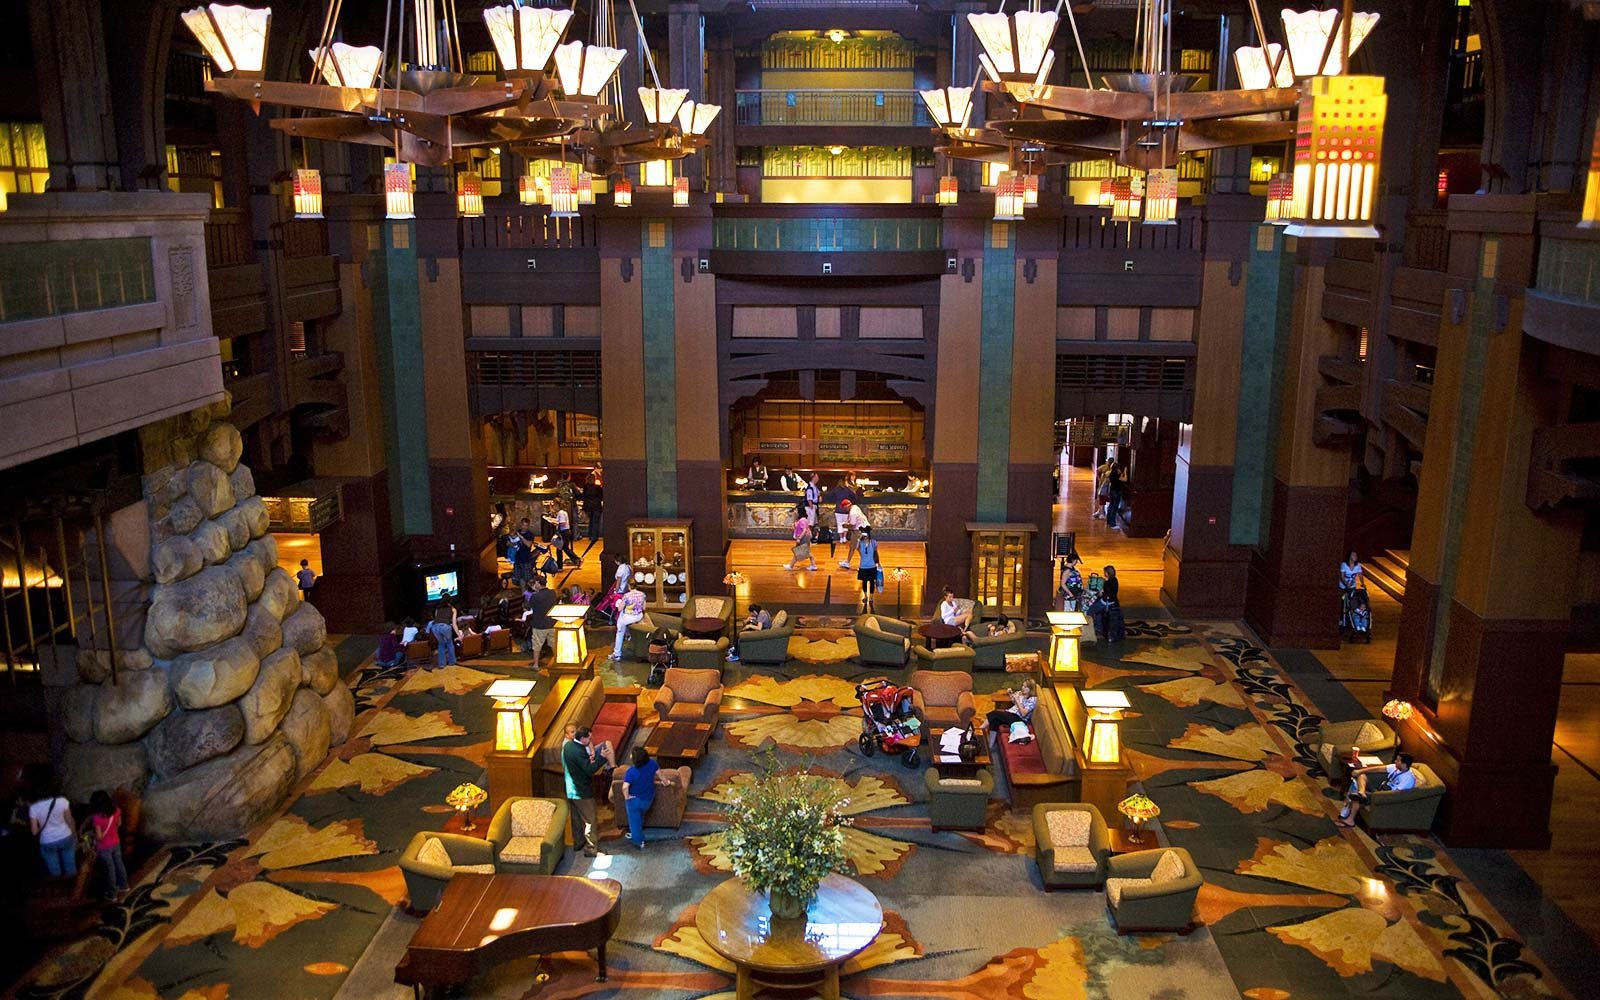 Disney's Grand Californian Hotel - Anaheim, California